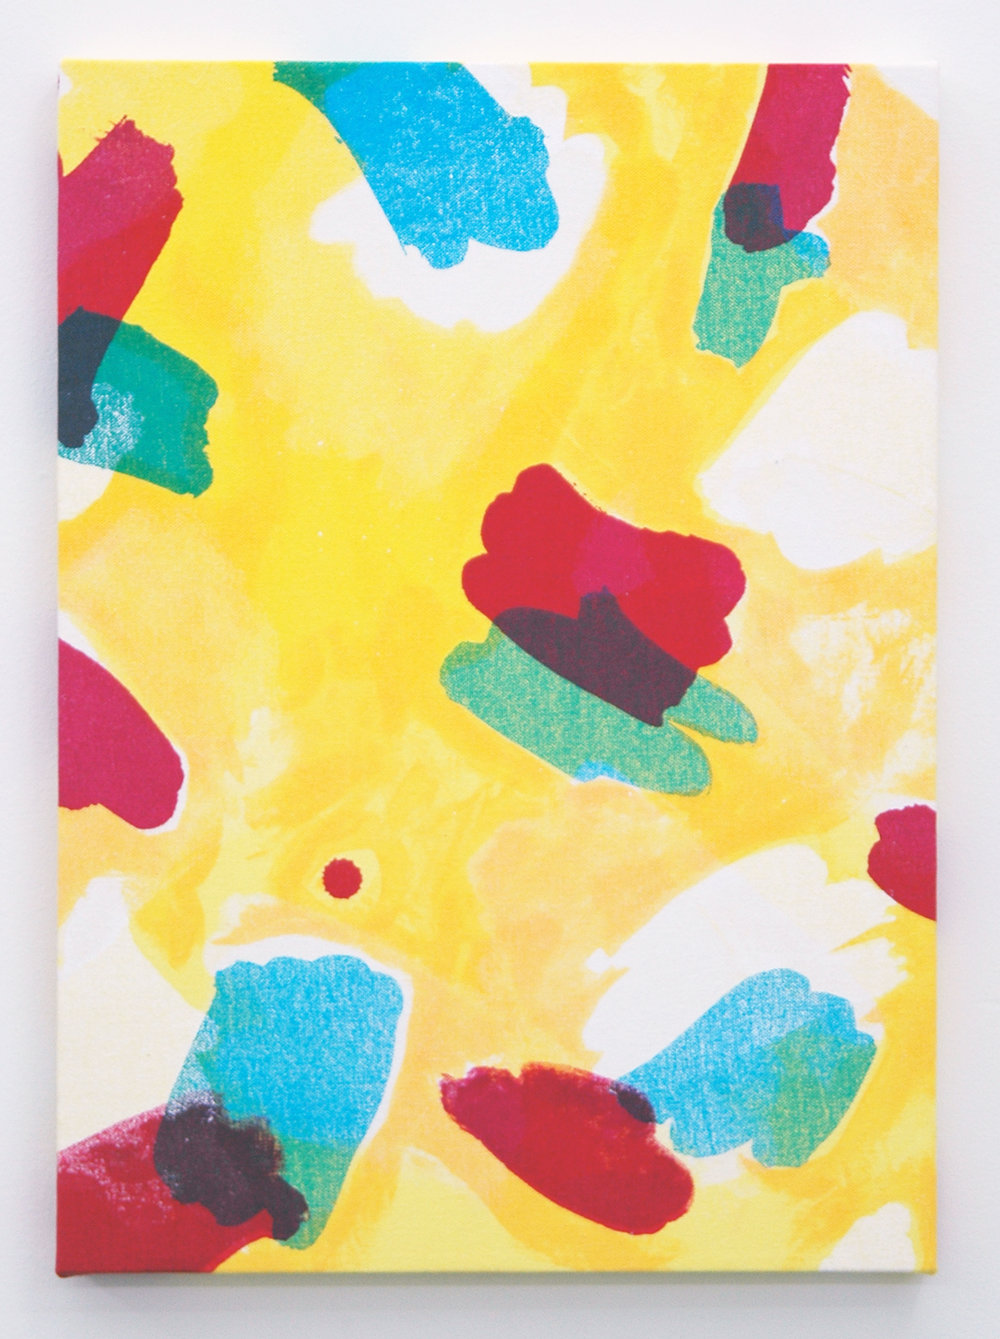 "/SLASH/  Amanda Curreri,  Calm Lunatics (Pattern for Performance) , fabric dye, acrylic, dye remover on cotton 18"" x 13"", 2014"